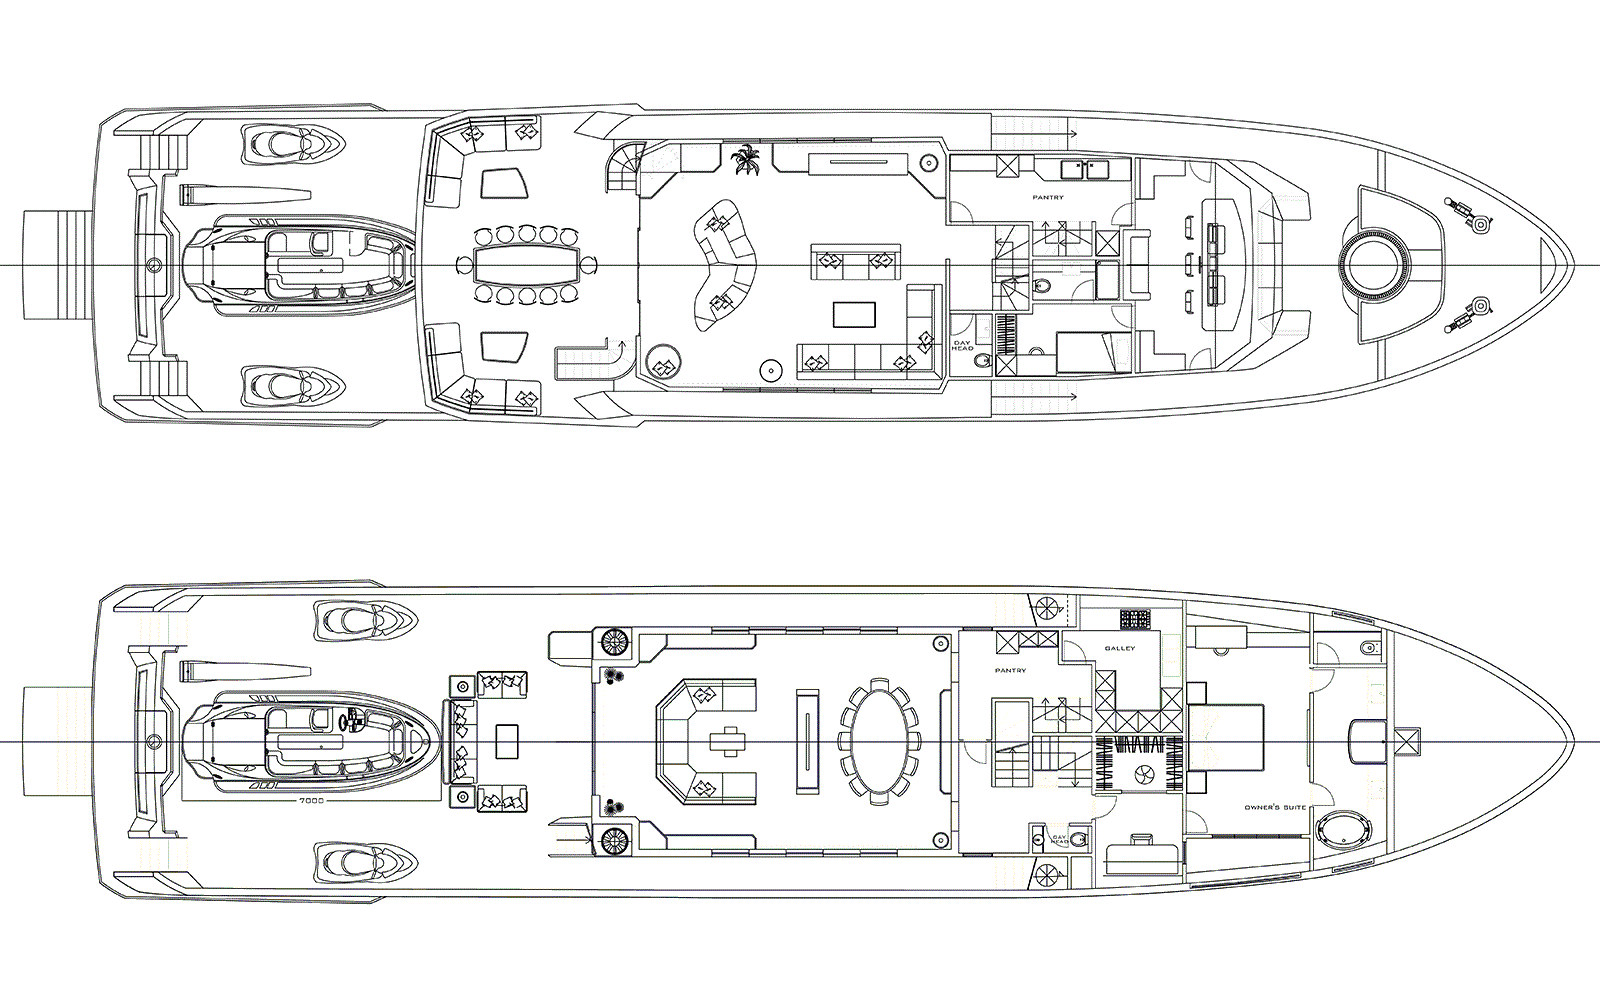 Deck Plan of M/Y PACIFICO 42 New Build Yacht for Sale